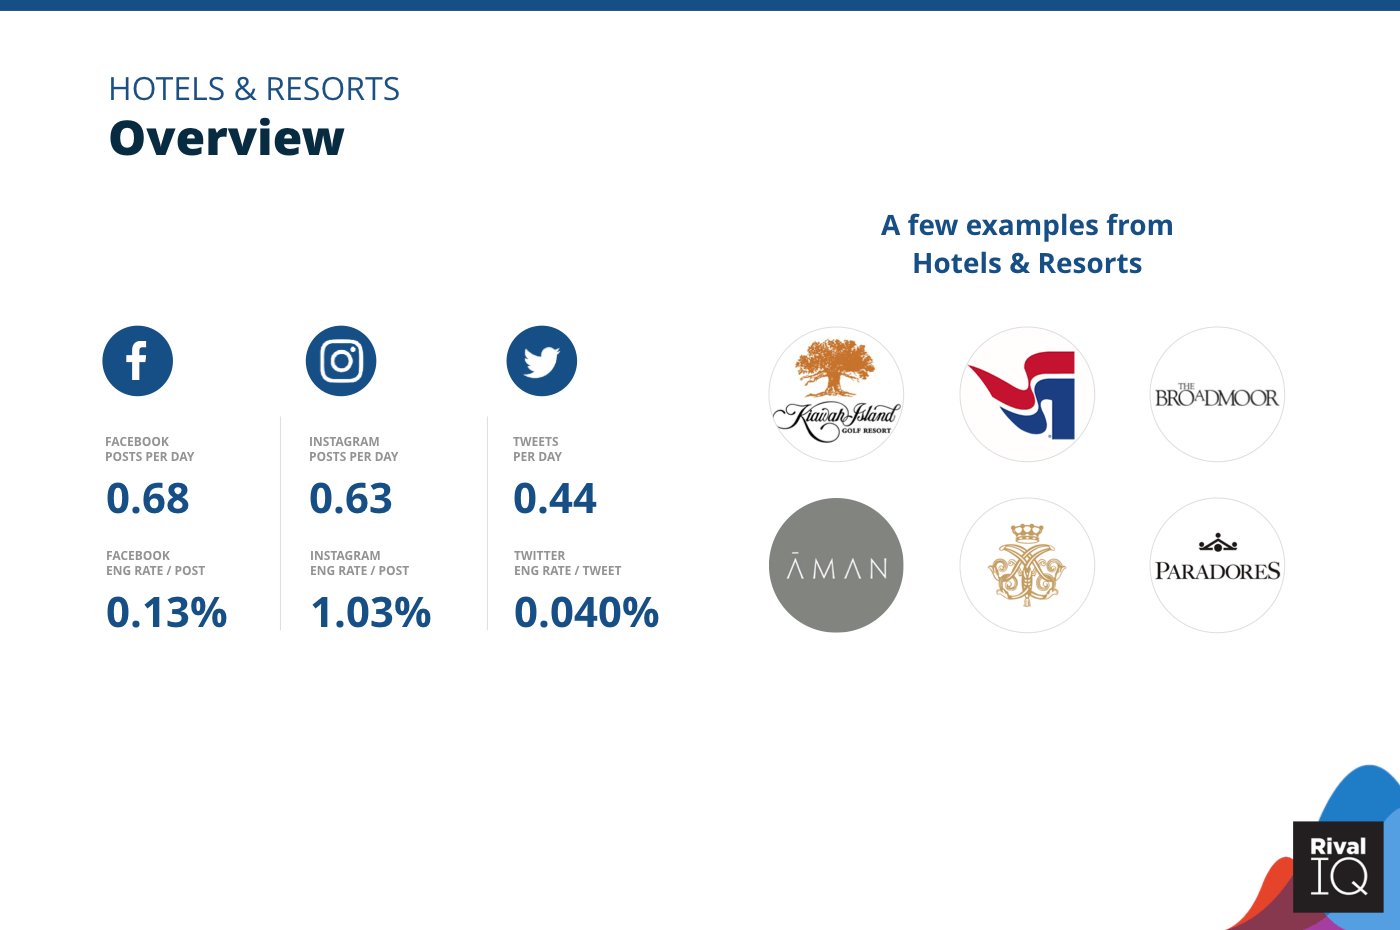 Overview of all benchmarks, Hotels & Resorts